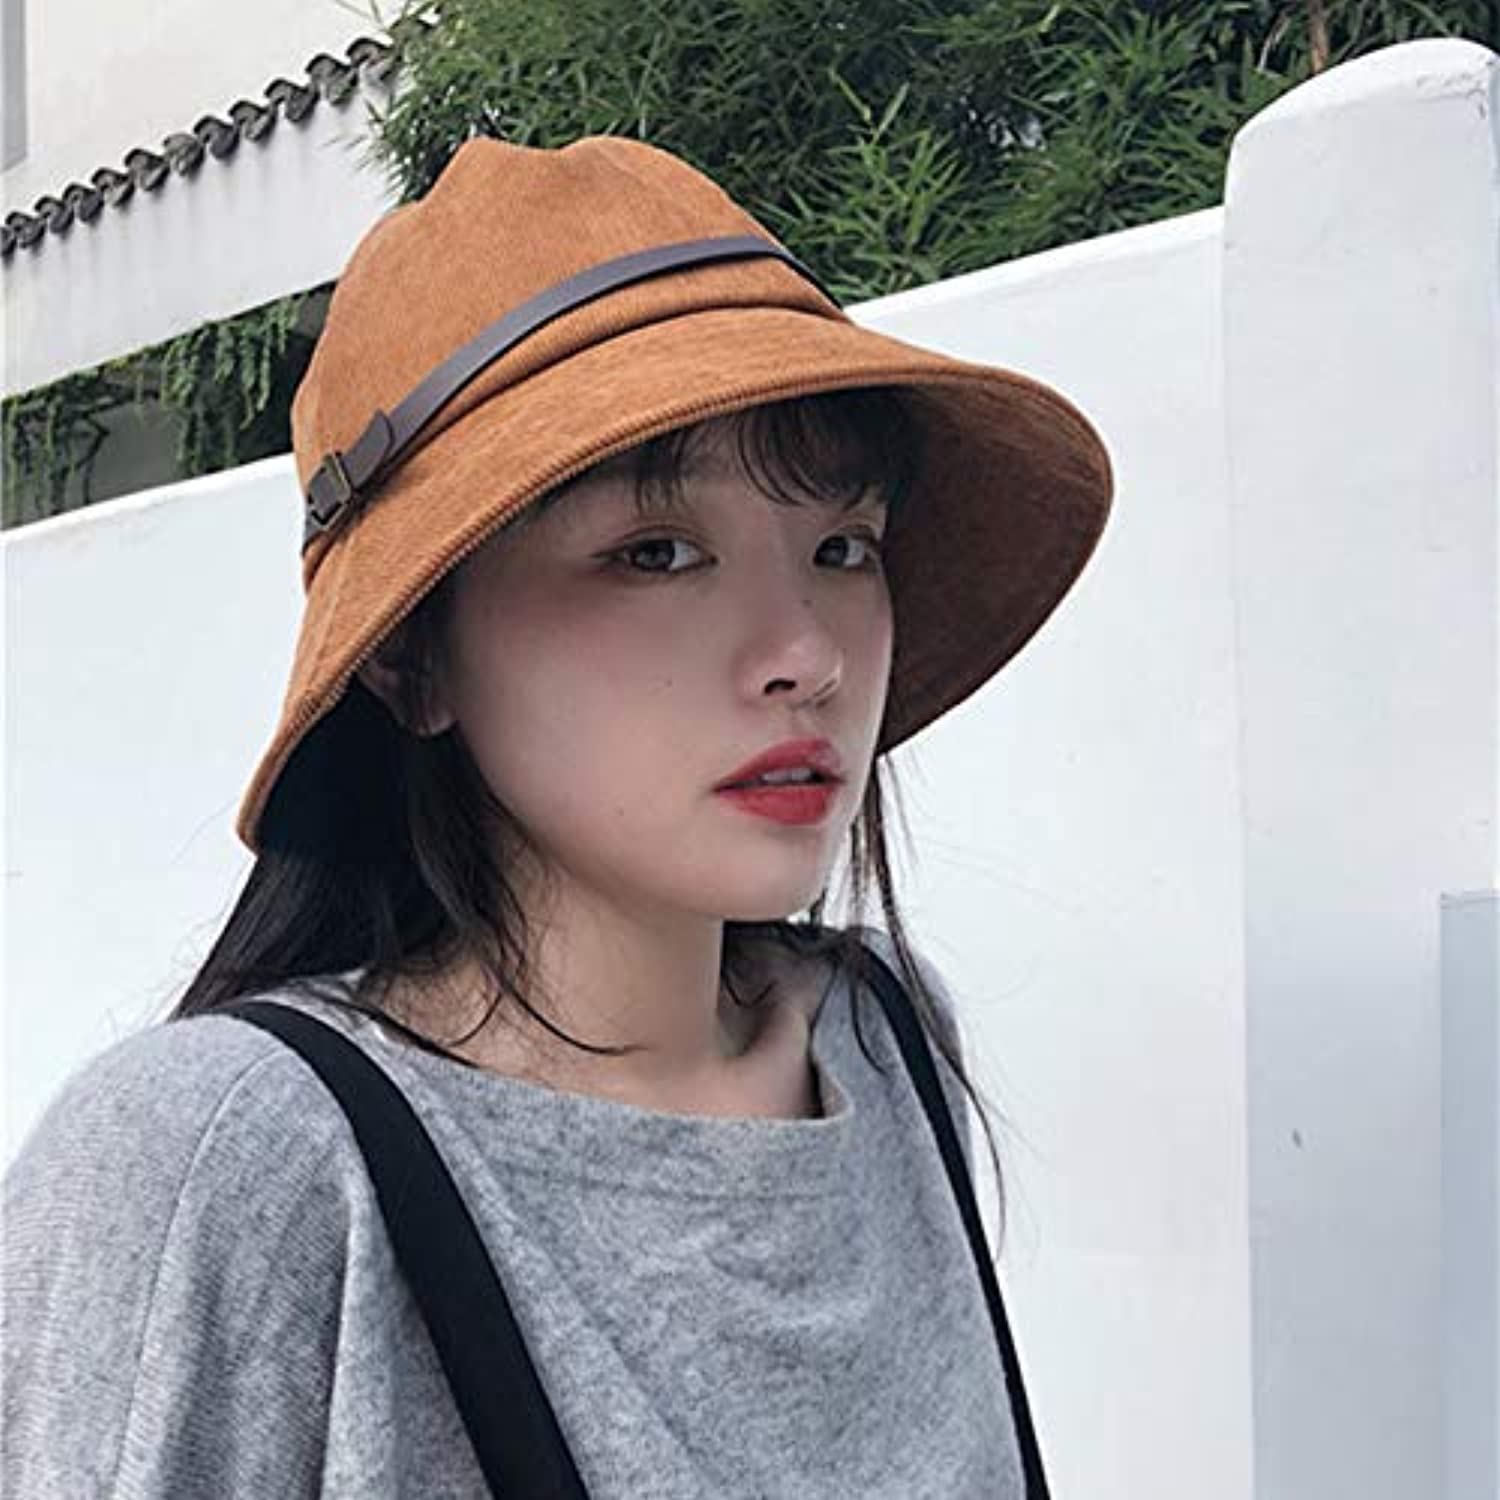 Home Japanese Retro Simple Solid color Corduroy Belt Fisherman hat Men and Women Spring and Autumn Wild caps Out of The Sun hat (color   Light Brown, Size   M(5658cm)) Warm Soft and Comfortable Hats